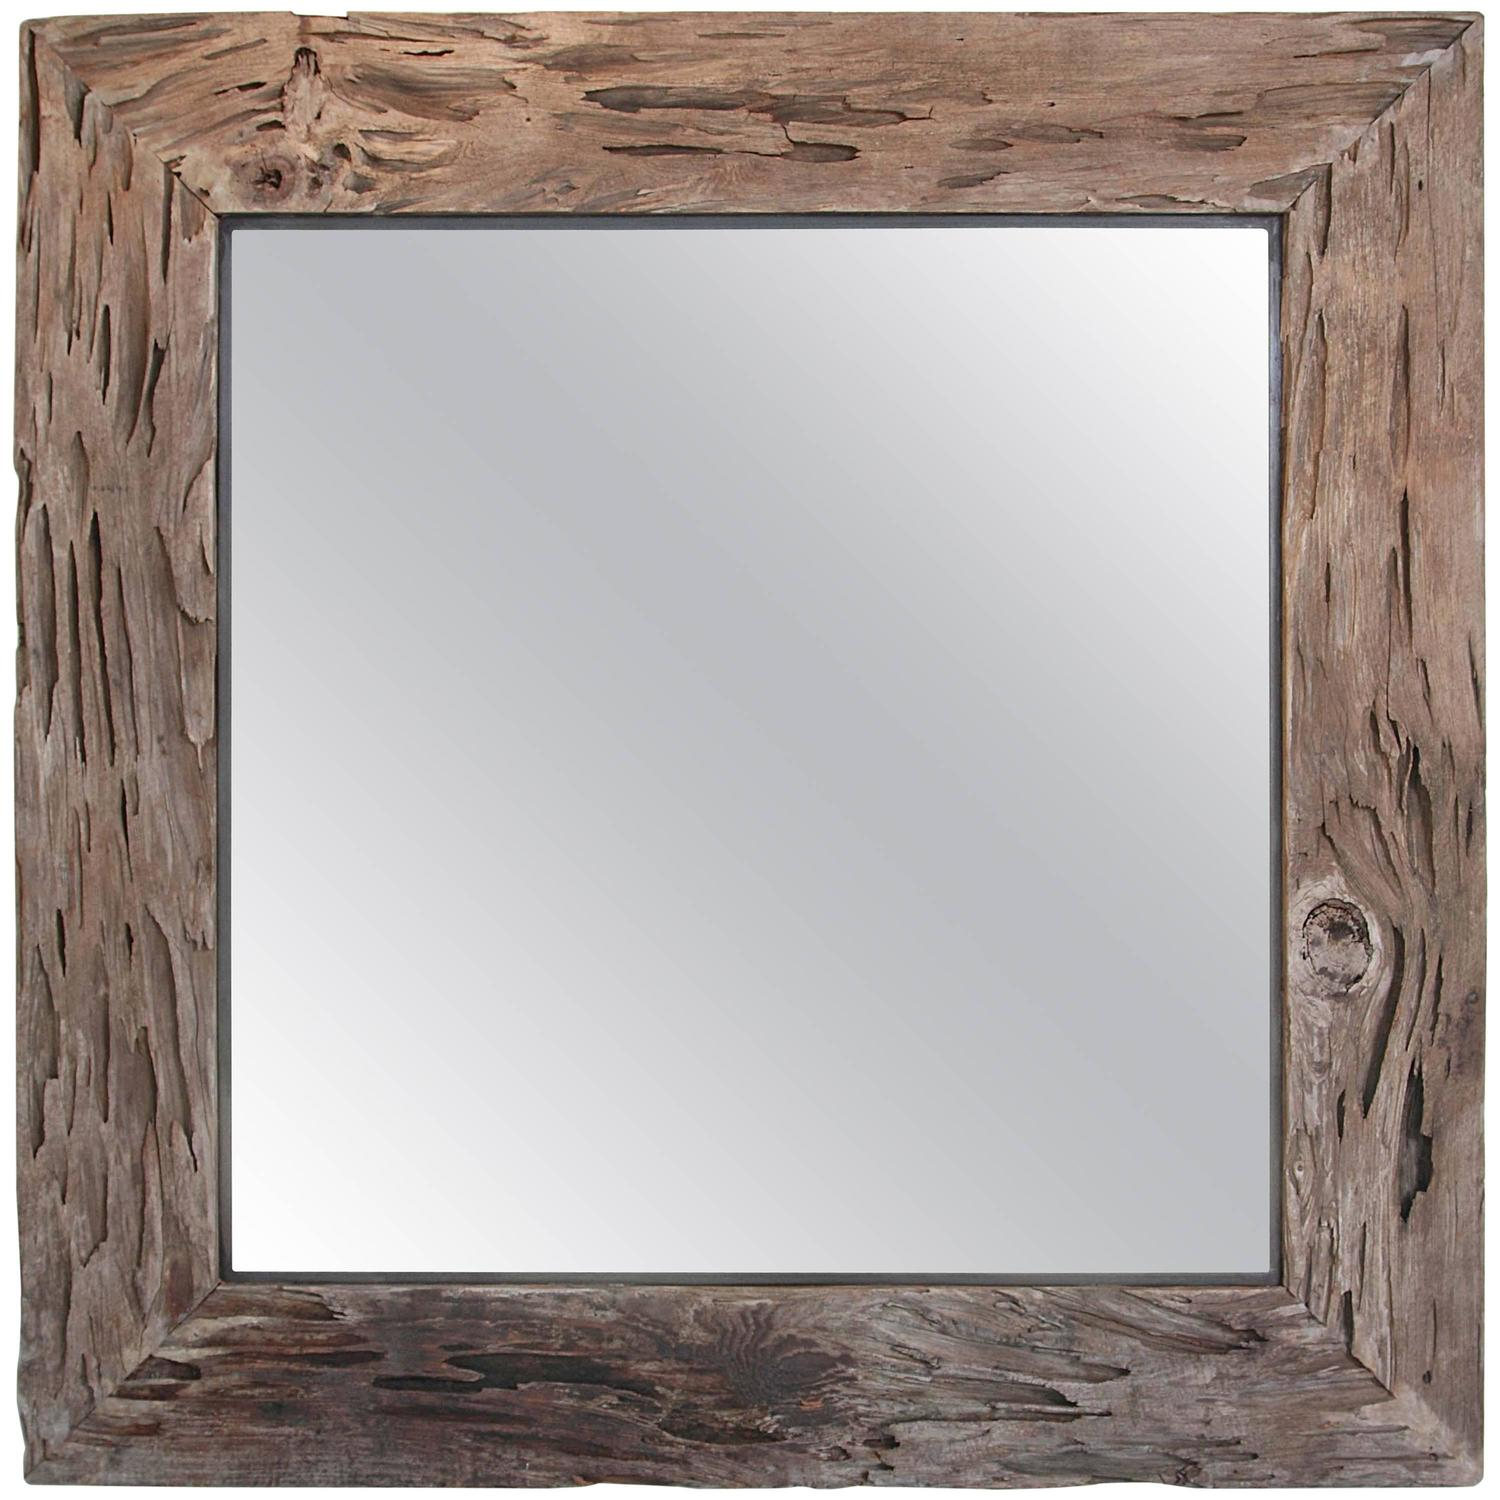 Organic cypress decorative wall mirror for sale at 1stdibs for Decorative wall mirrors for sale